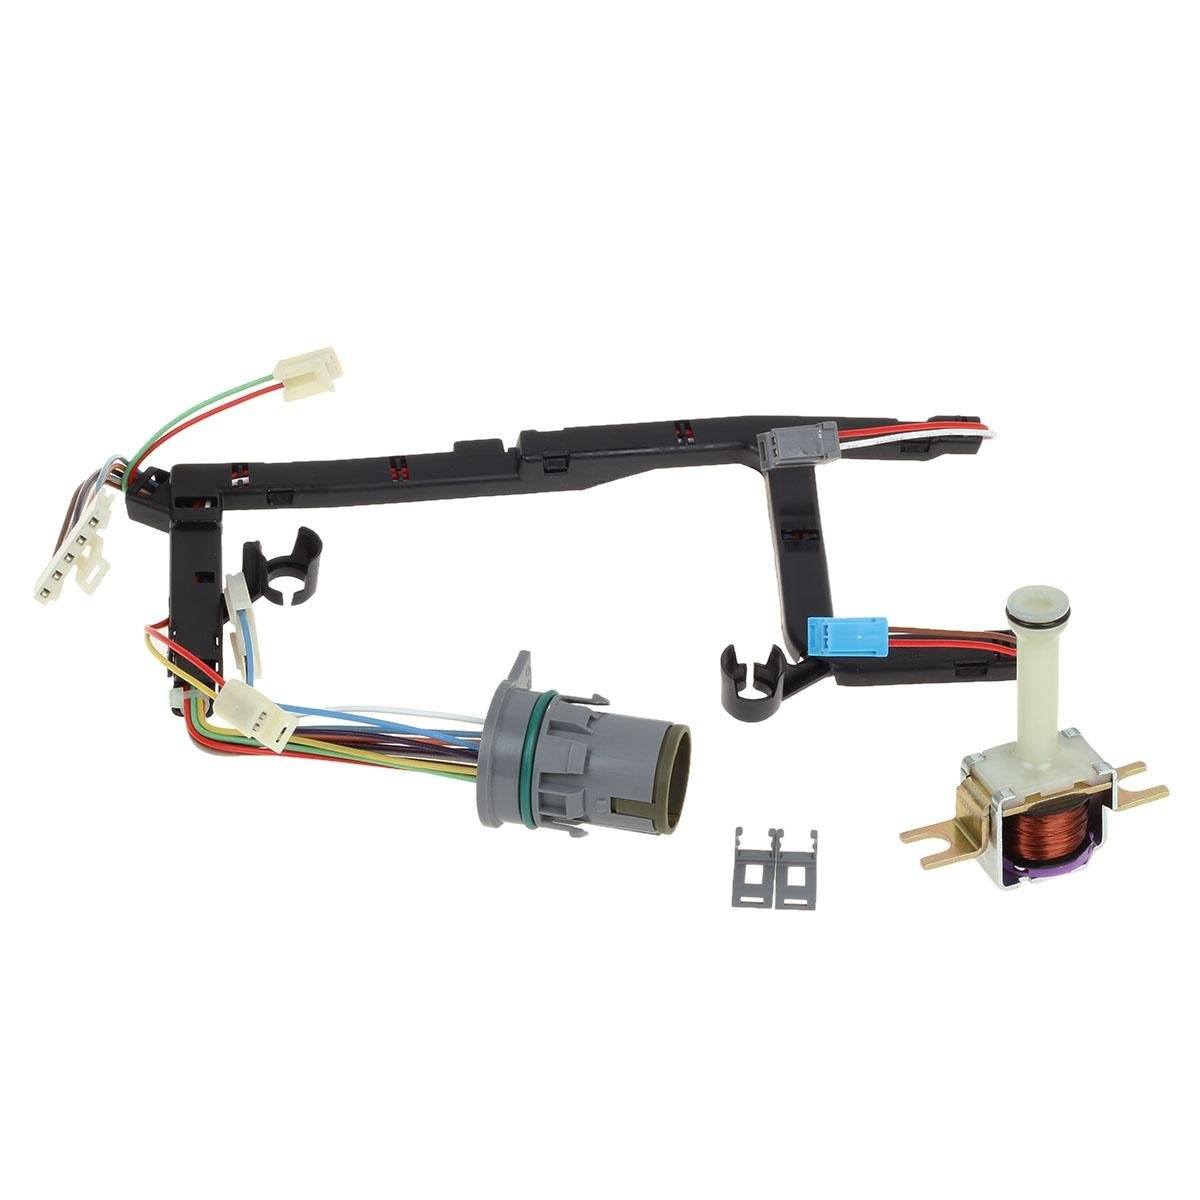 small resolution of universal 4l60e transmission solenoid internal wire harness with tcc for 1993 2002 gm in wire from automobiles motorcycles on aliexpress com alibaba